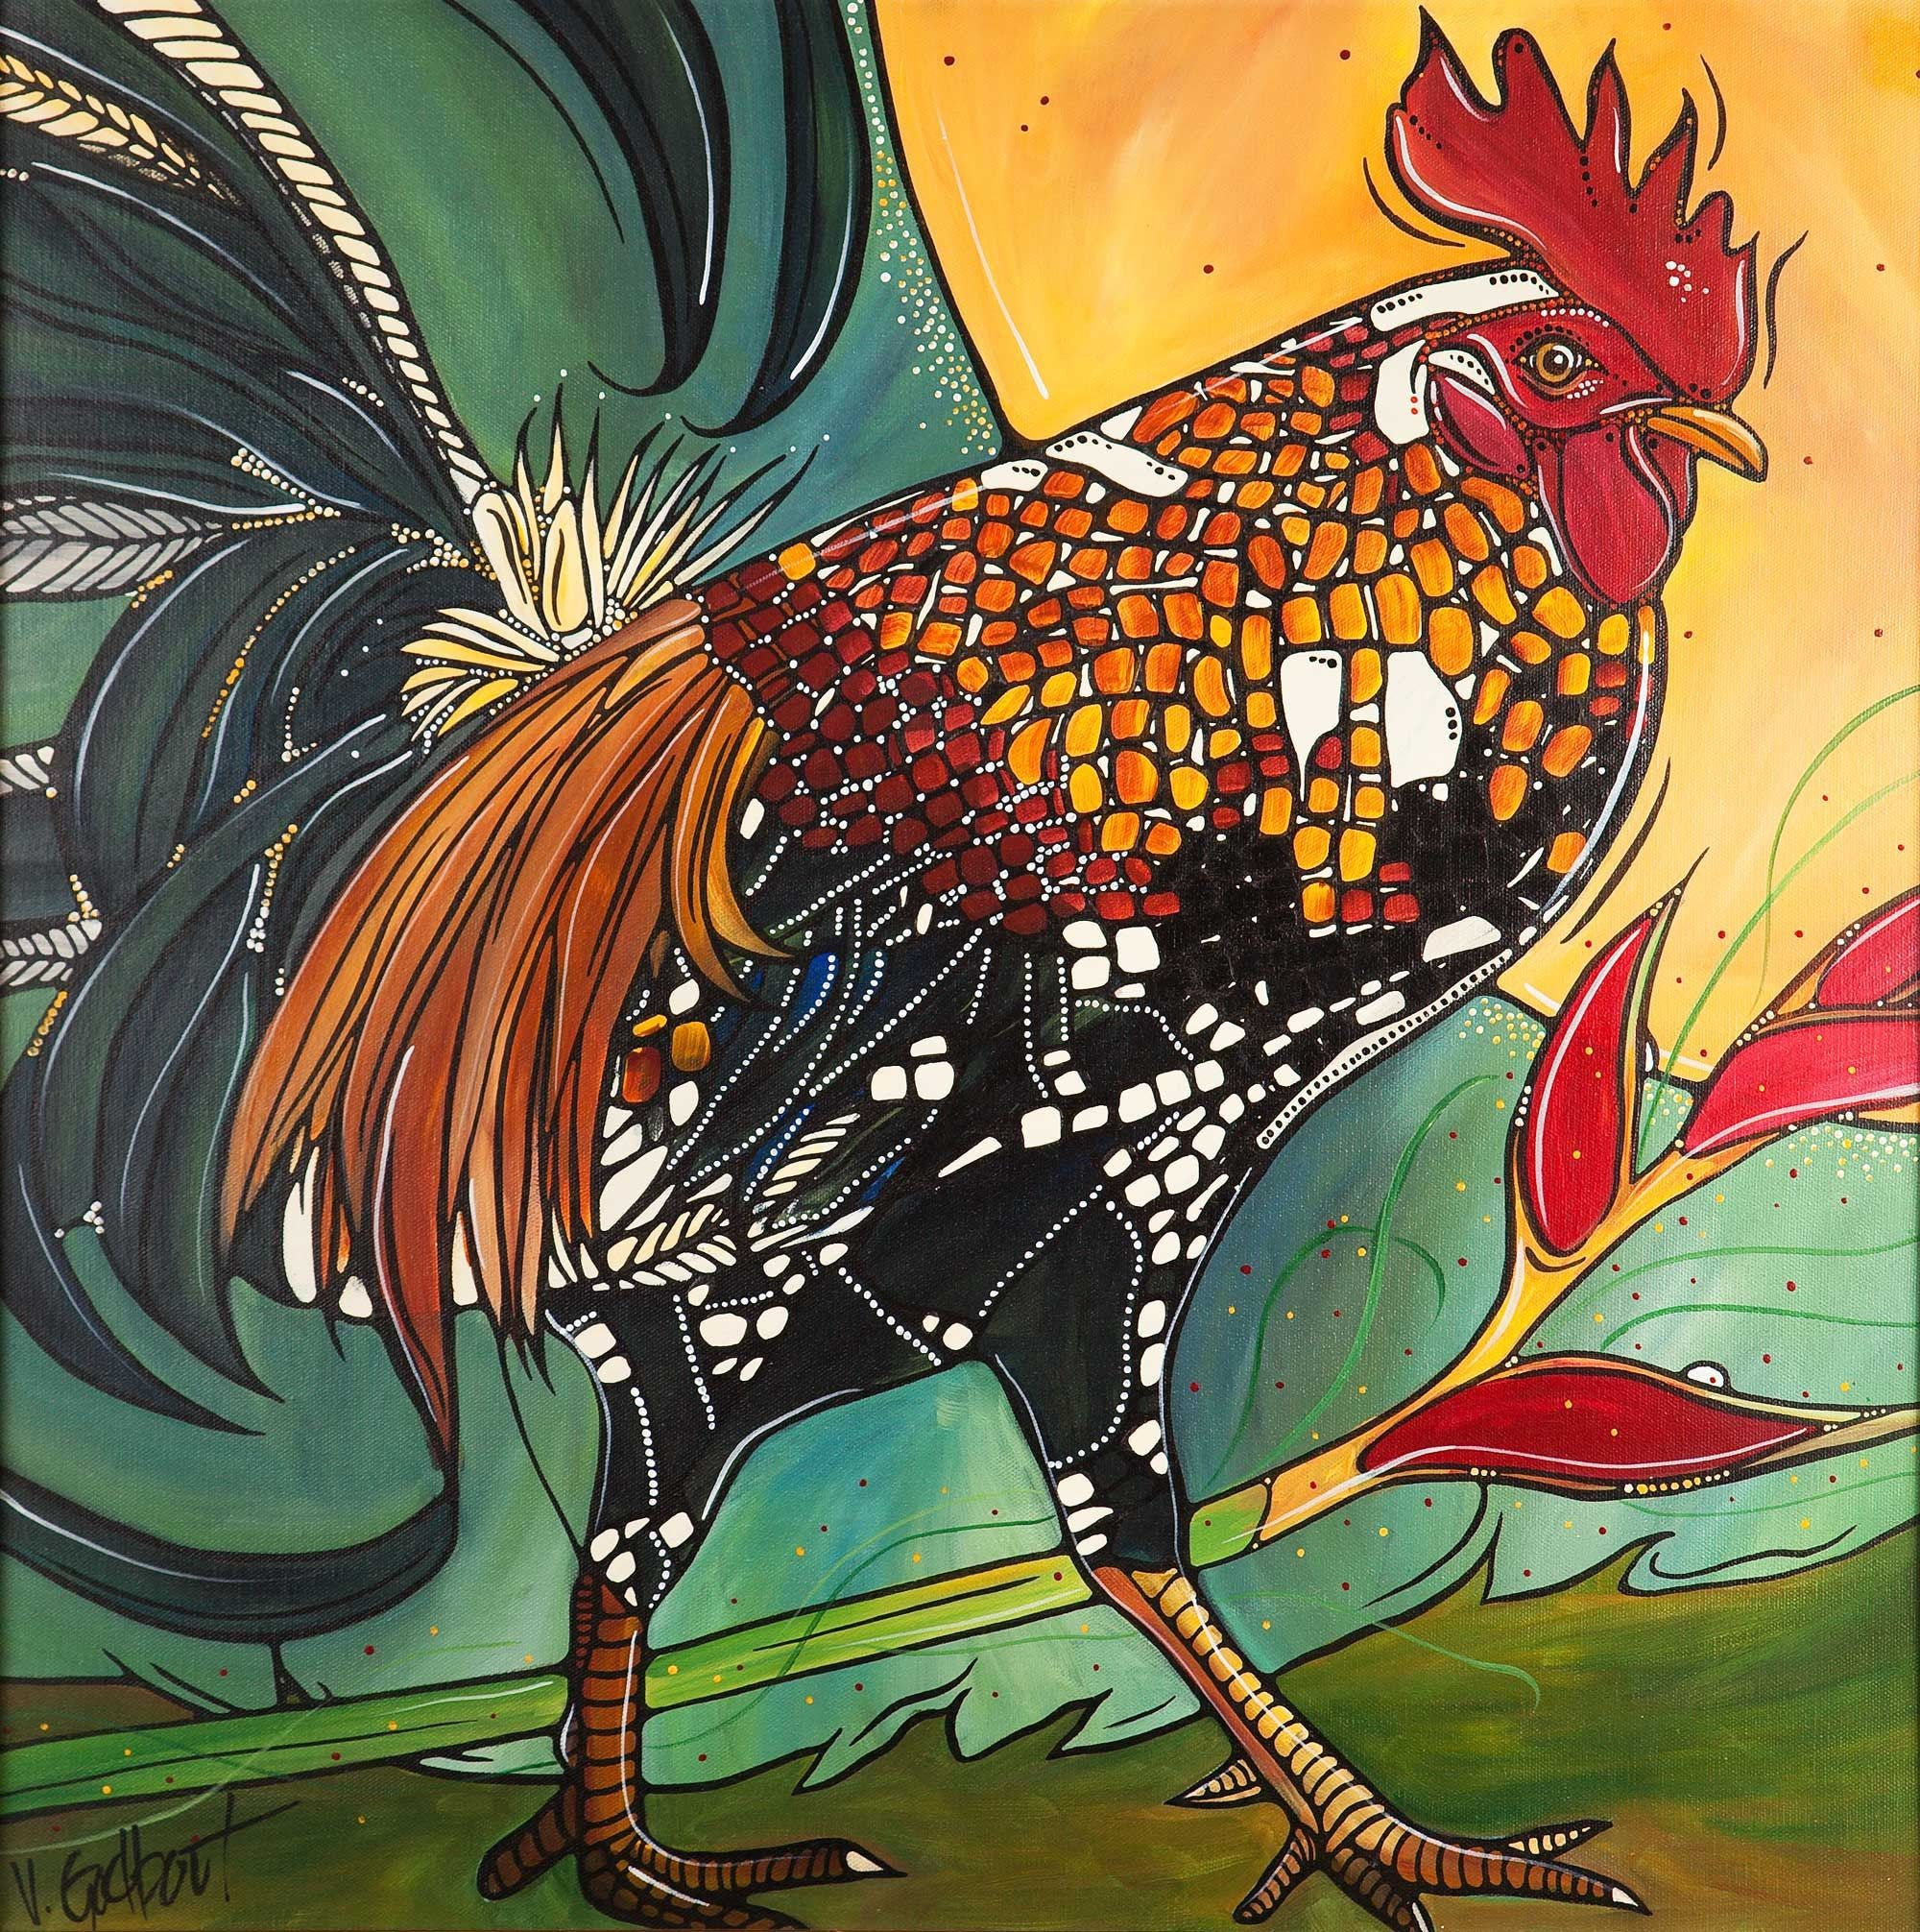 Chicken Art Print Rooster Wall Art Colorful Bird Artwork Farm Animal Giclee Print For Kitchen Decor Rooster Wall Art Bird Artwork Art Prints